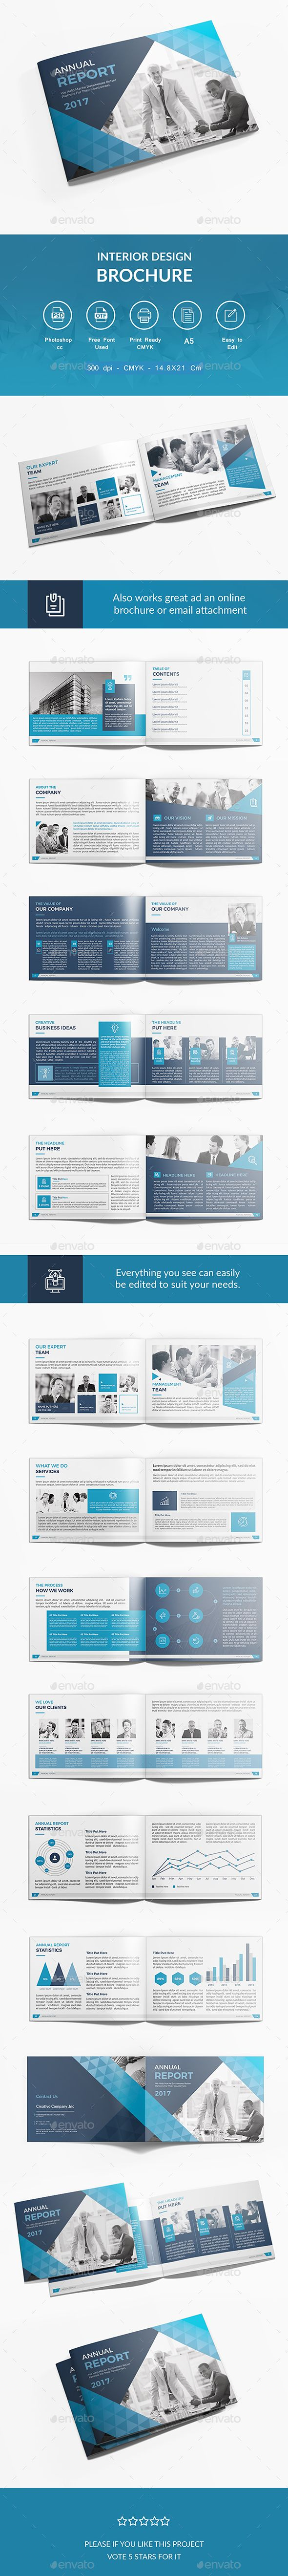 Annual Report  — PSD Template #magazine #annual report • Download ➝ https://graphicriver.net/item/annual-report/18109258?ref=pxcr